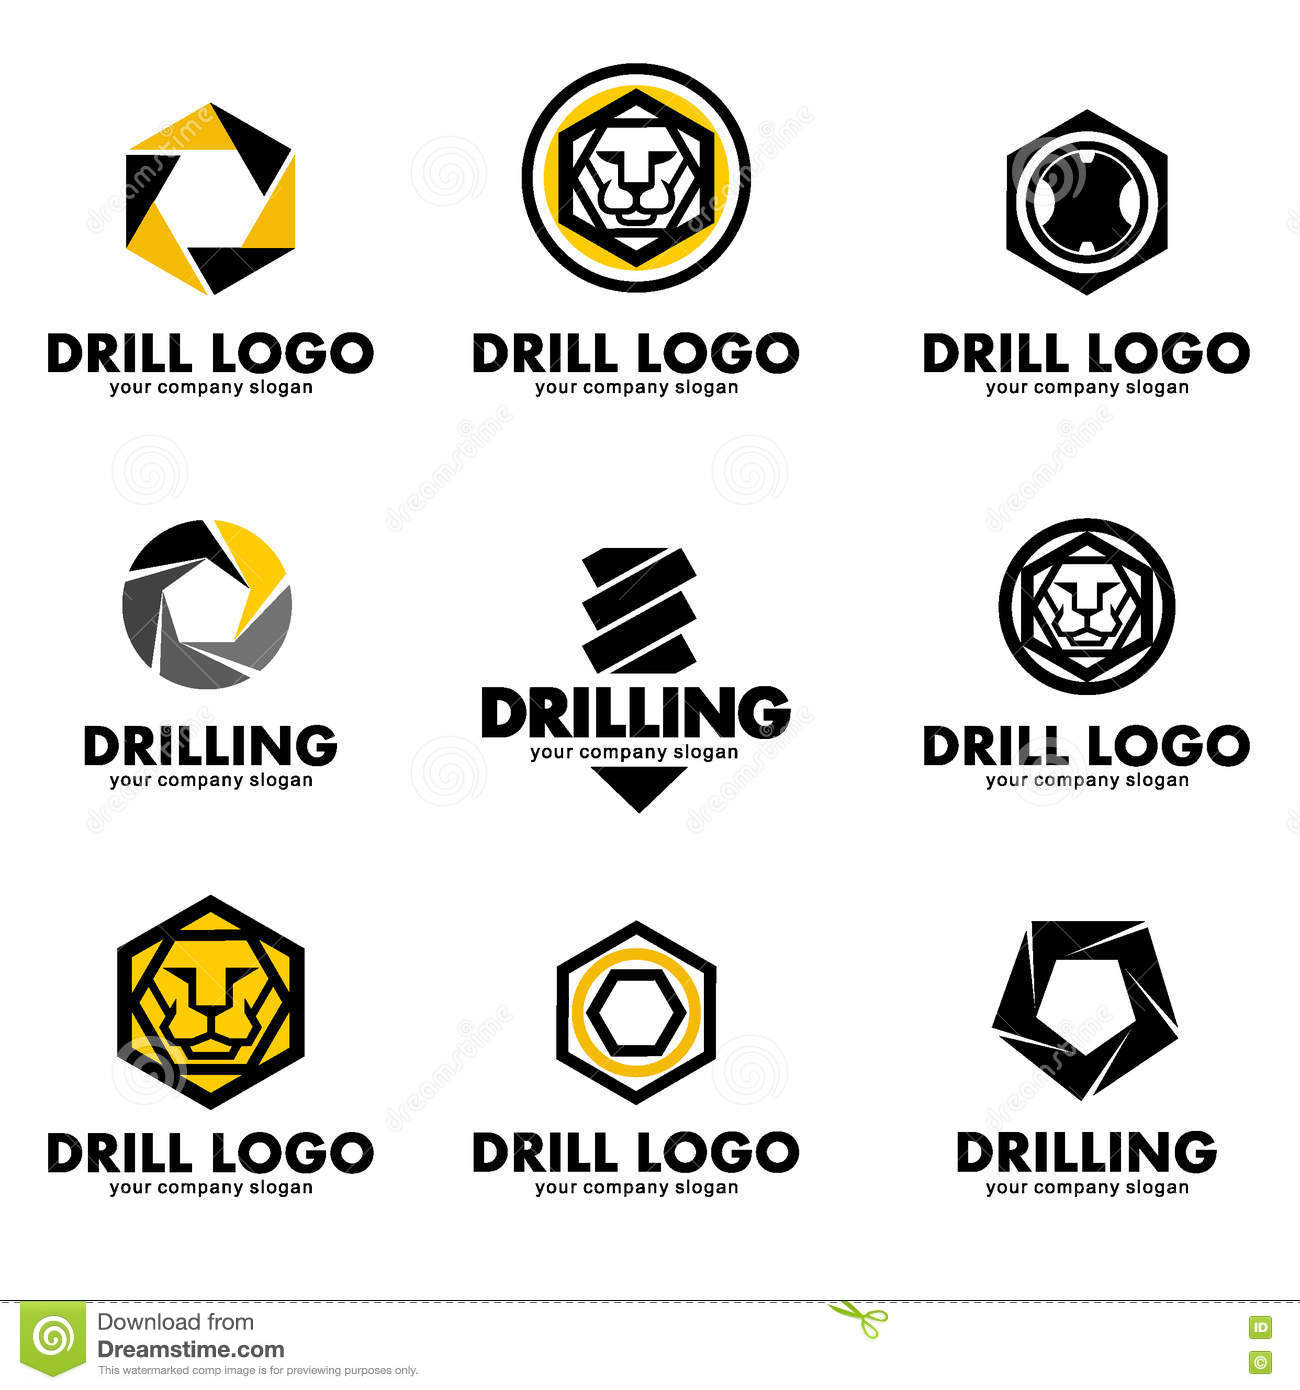 Drill Logo Pictures To Pin